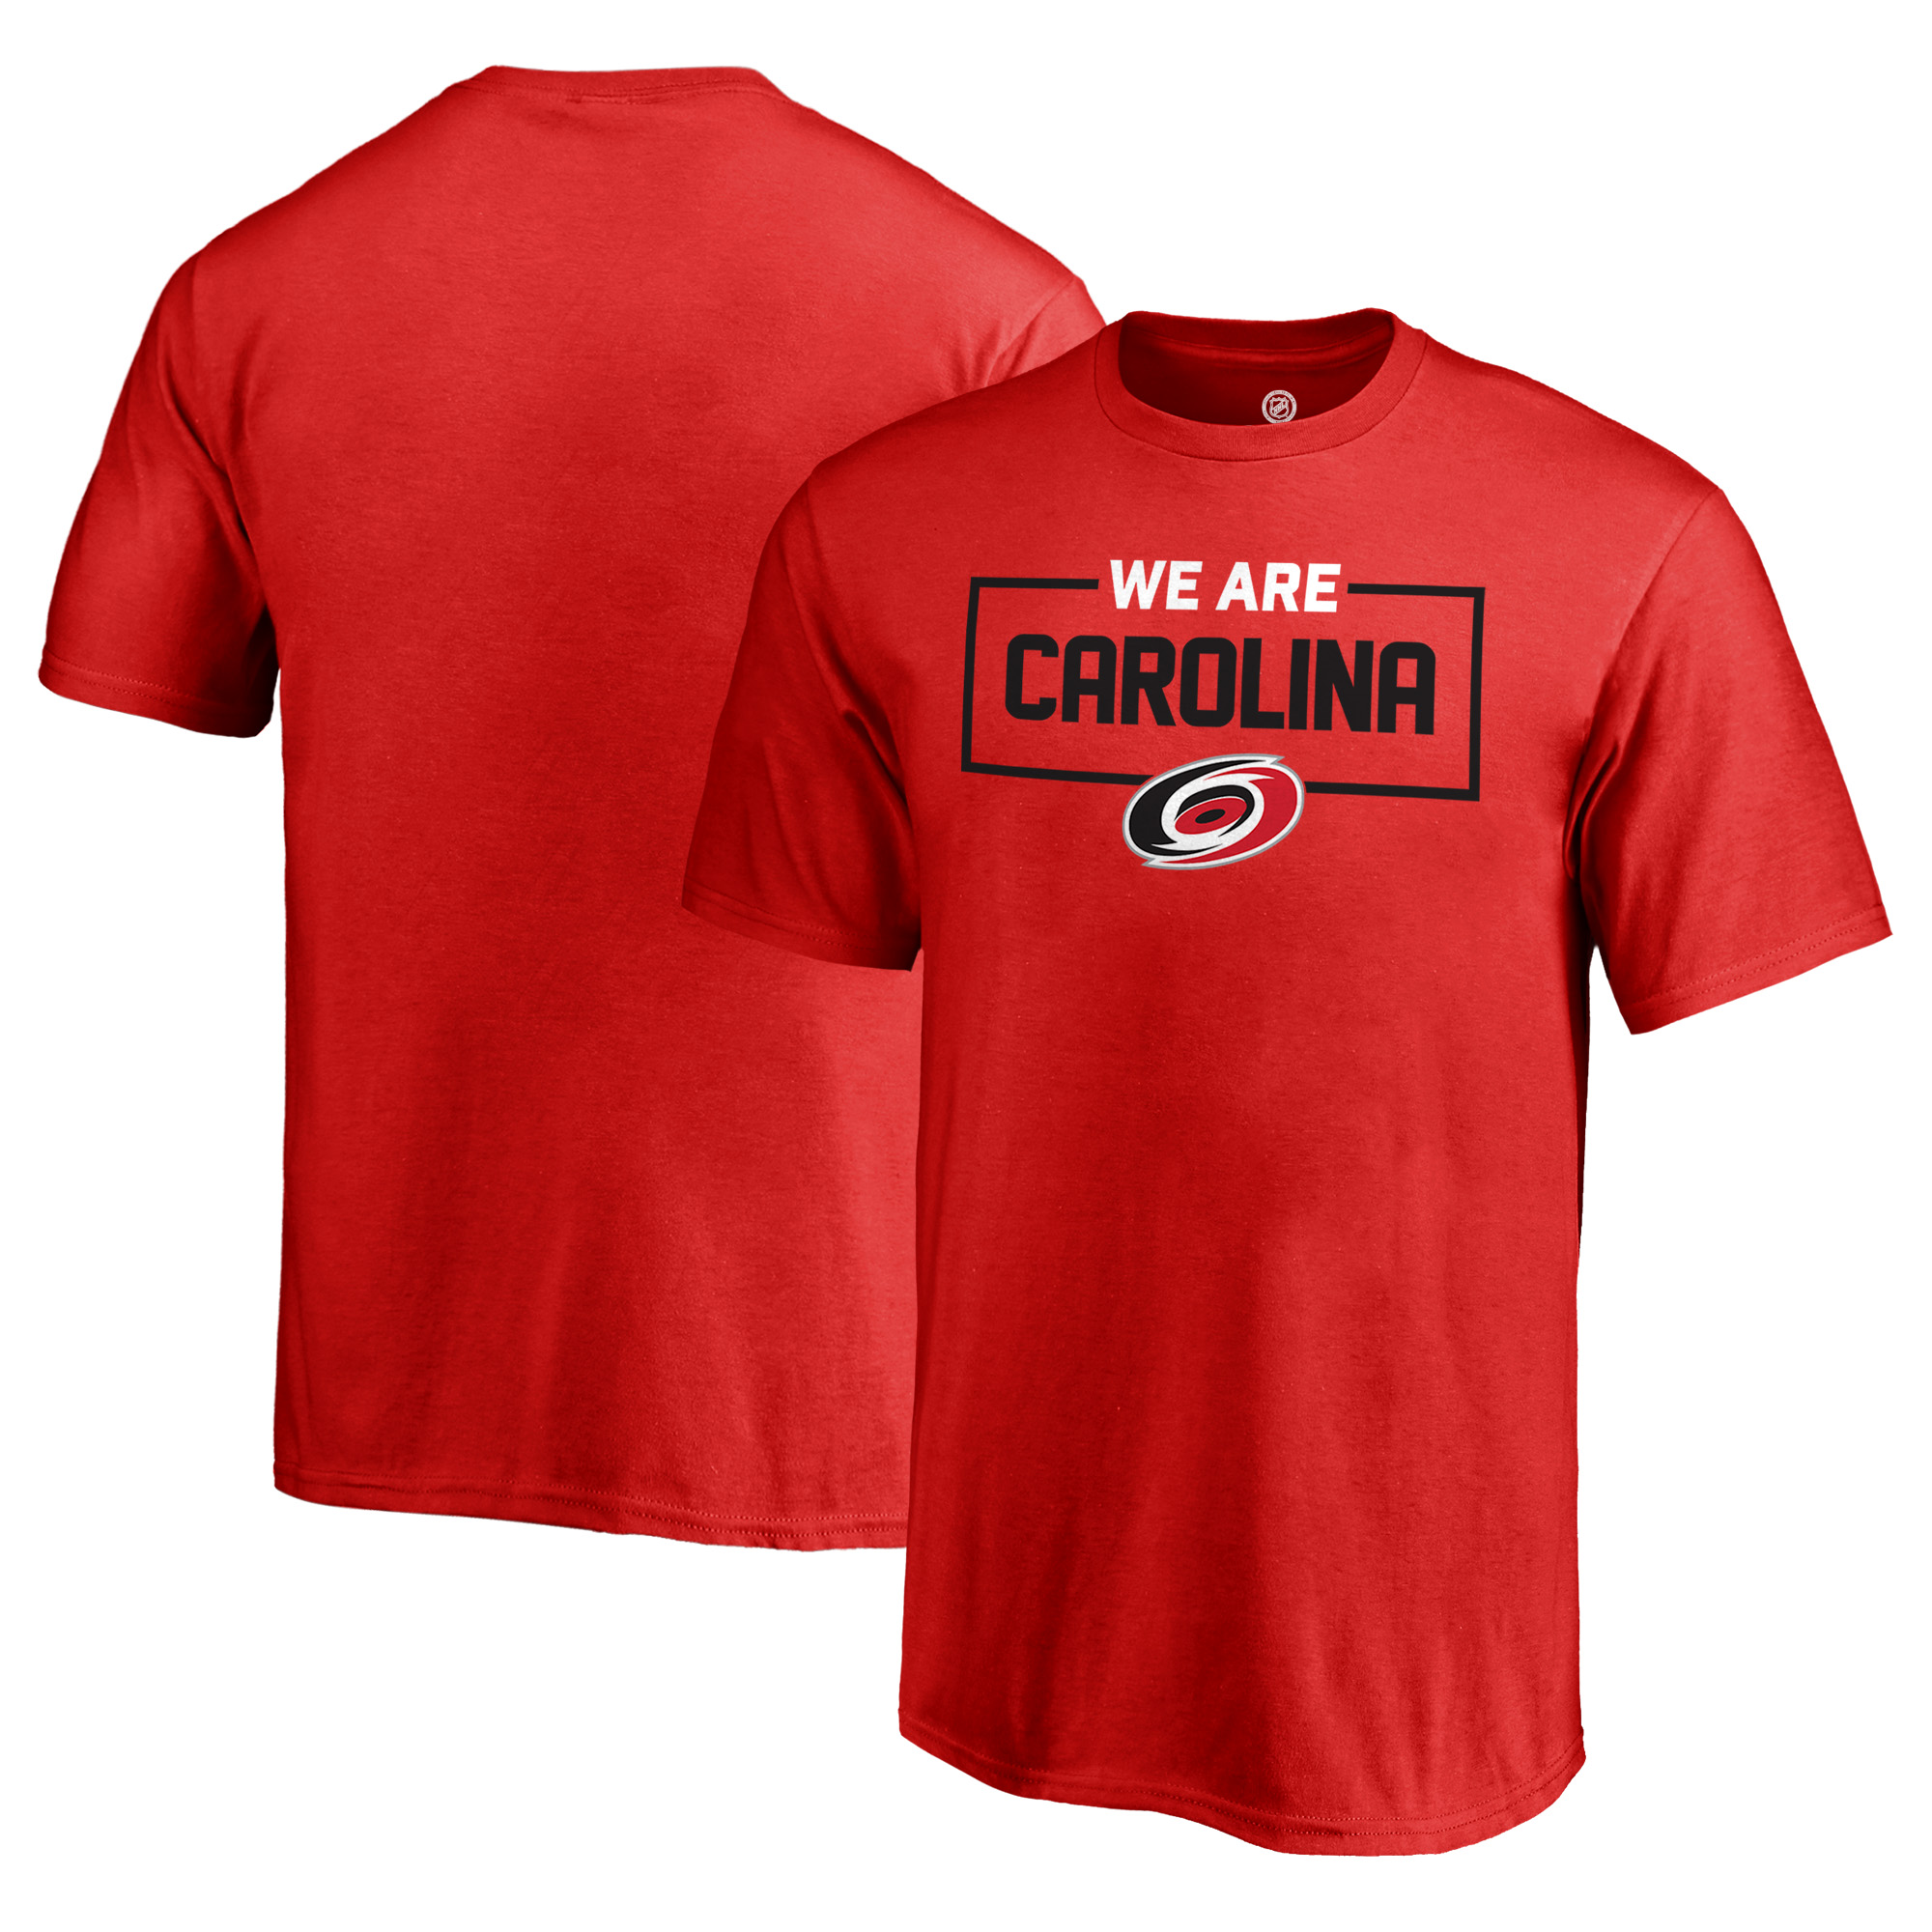 Carolina Hurricanes Fanatics Branded Youth Iconic Collection We Are T-Shirt - Red